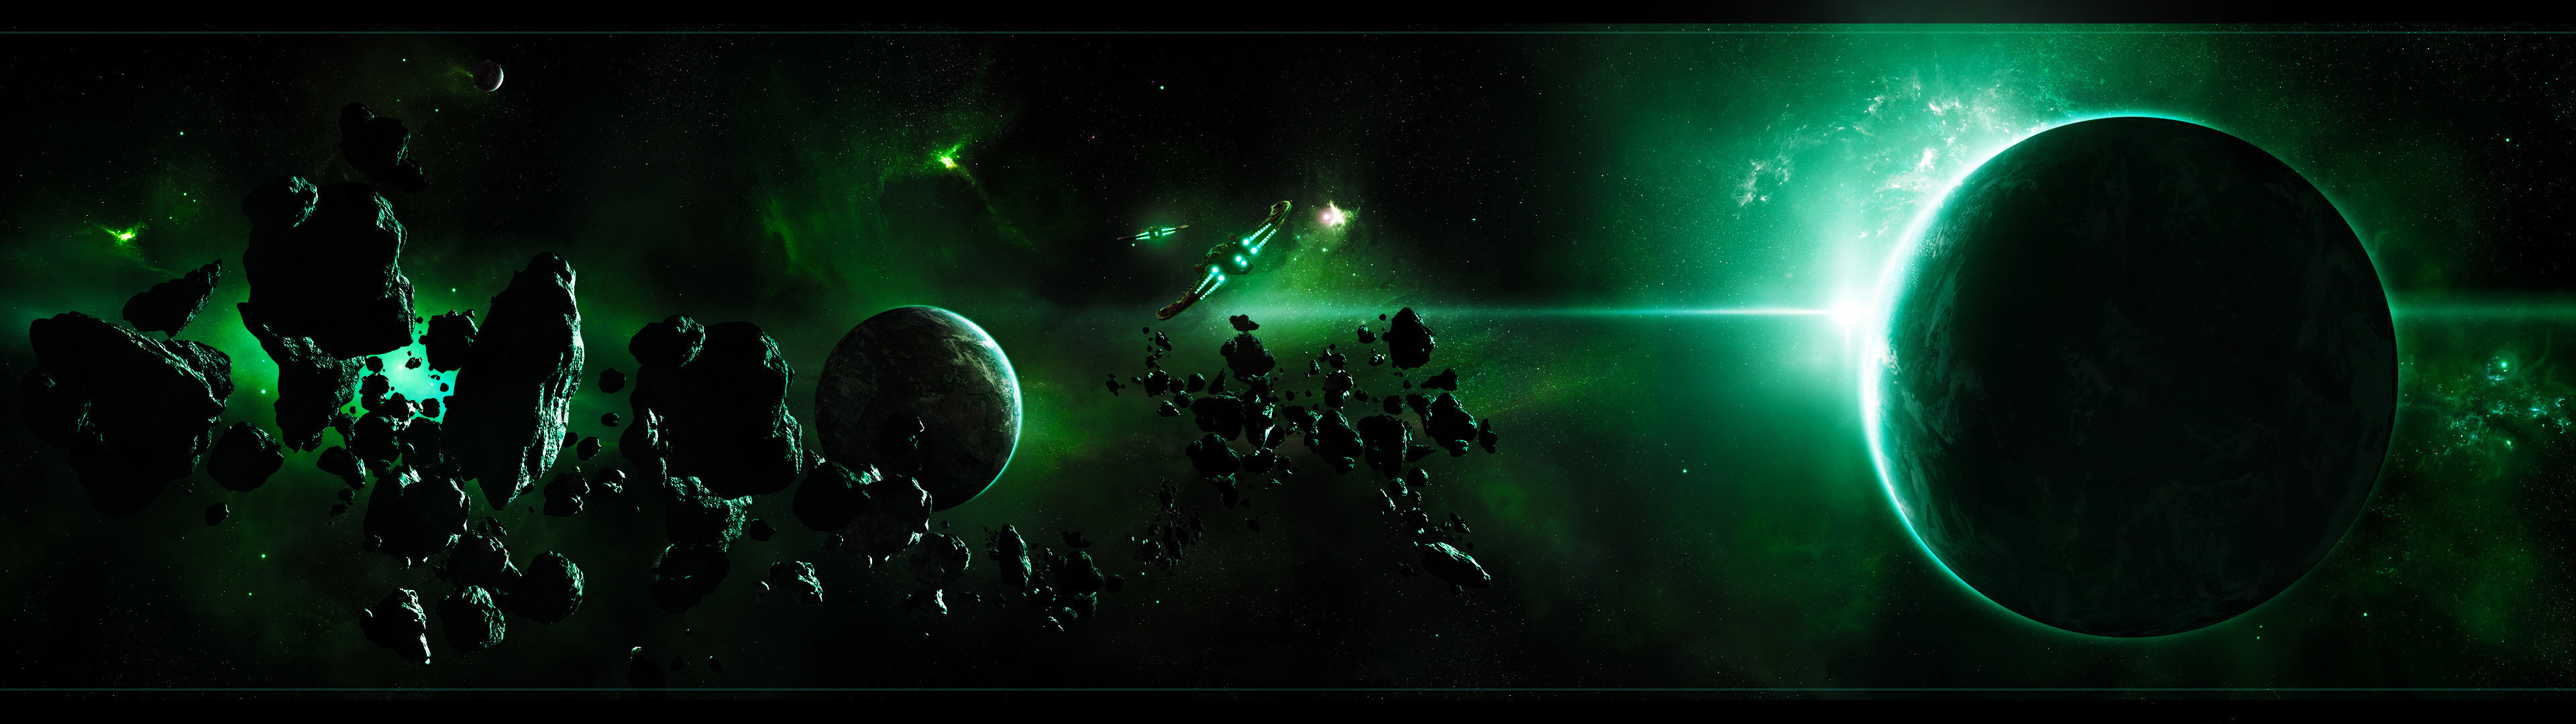 Dual Monitor Backgrounds 3840x1080 Posted By Christopher Peltier